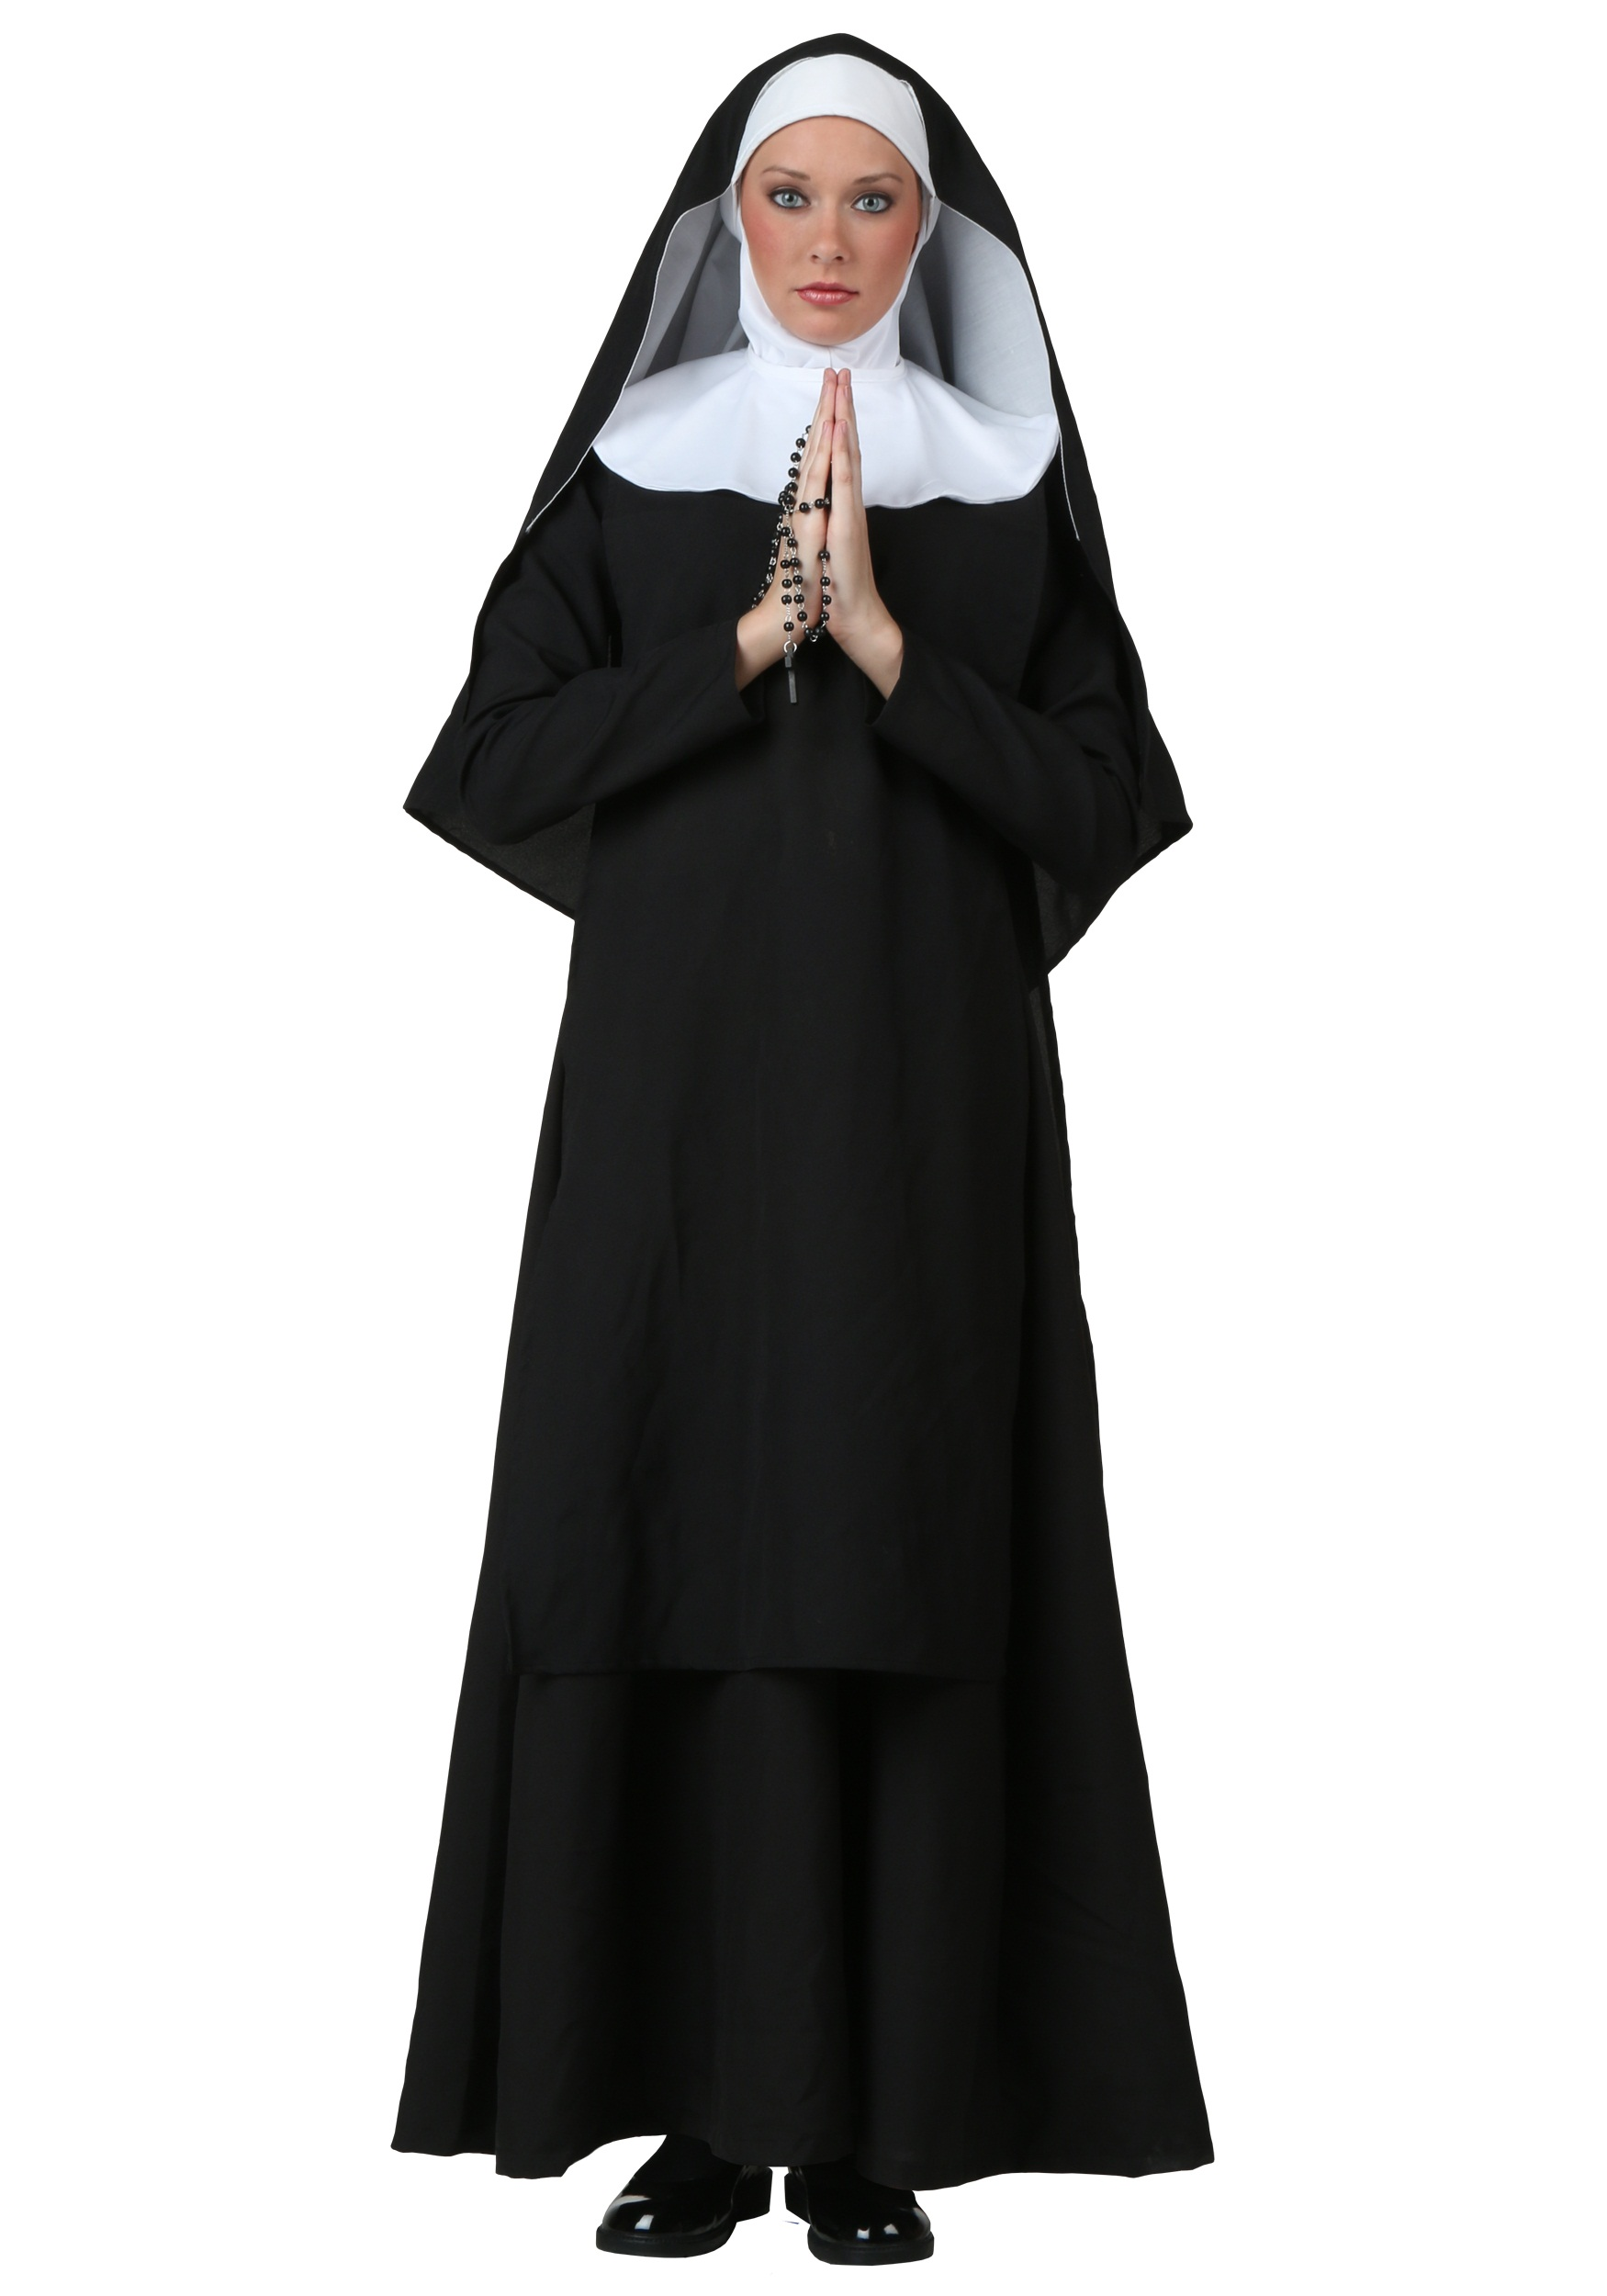 Deluxe Nun Plus Size Costume for Women